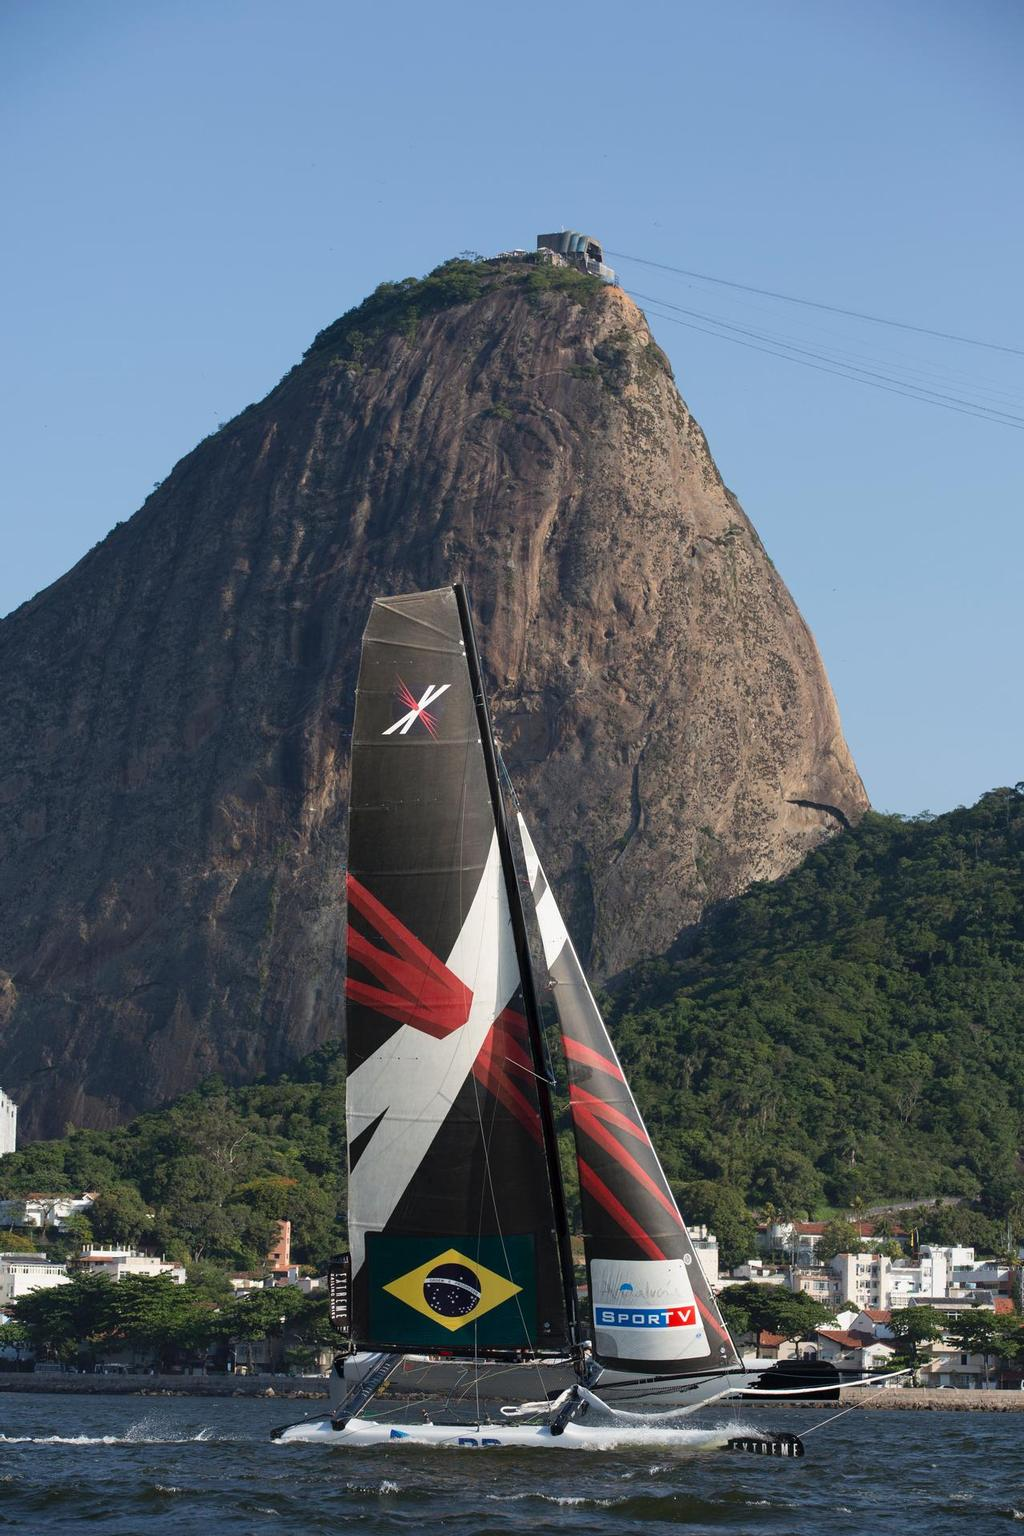 Team Brazil compete in Rio de Janeiro in 2012 under the iconic Sugar Loaf Mountain © Lloyd Images